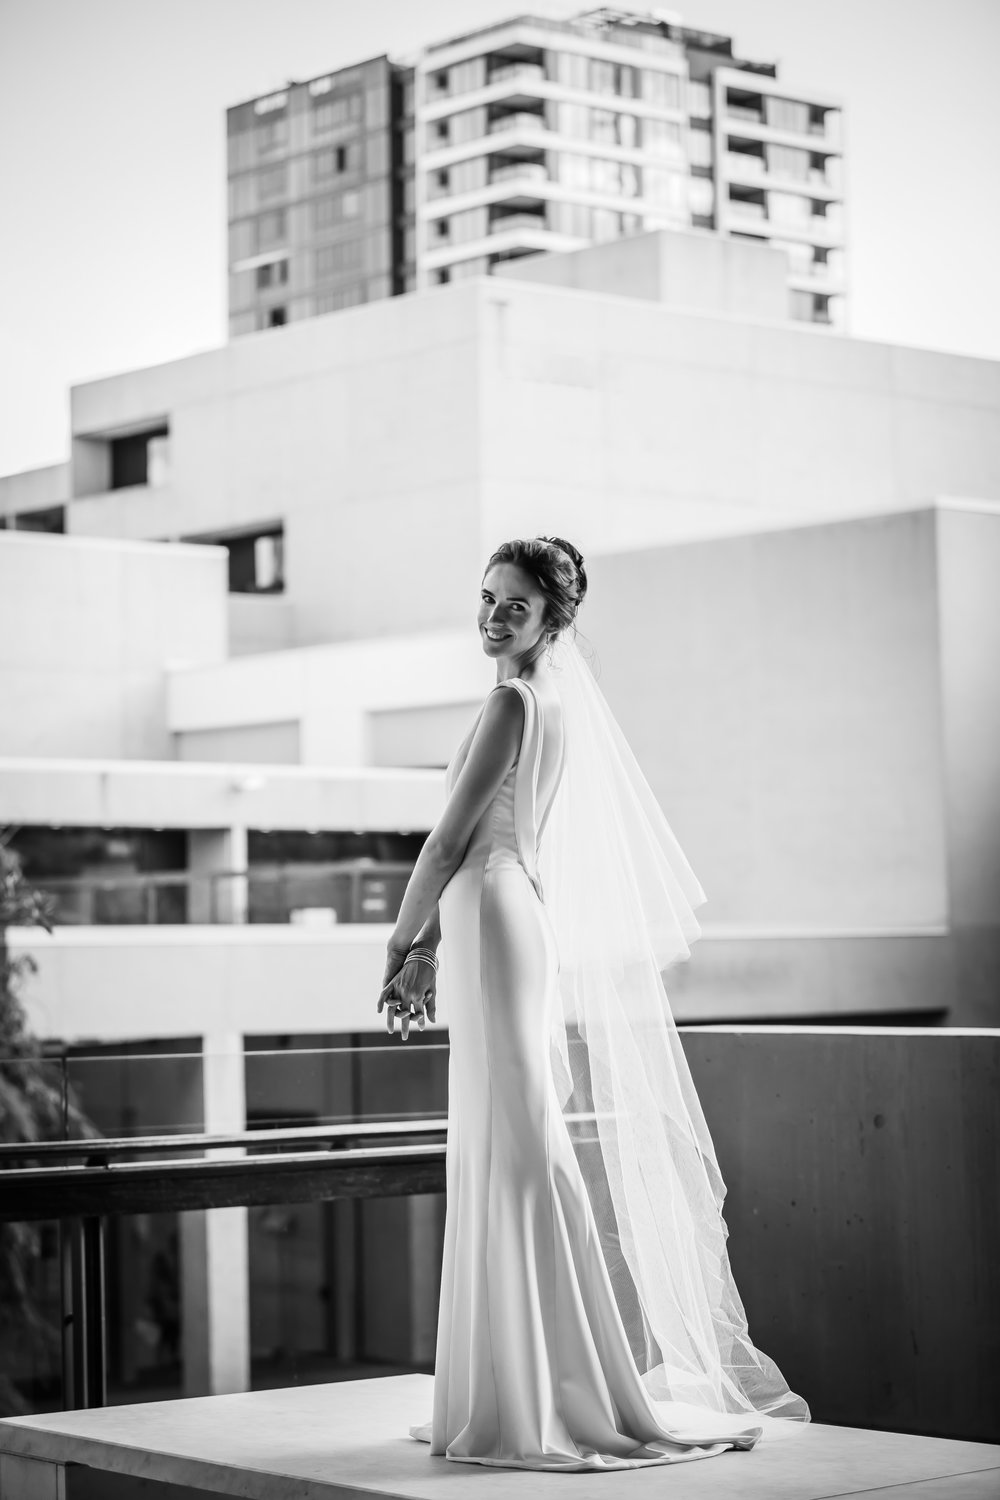 Brisbane's best wedding photographer